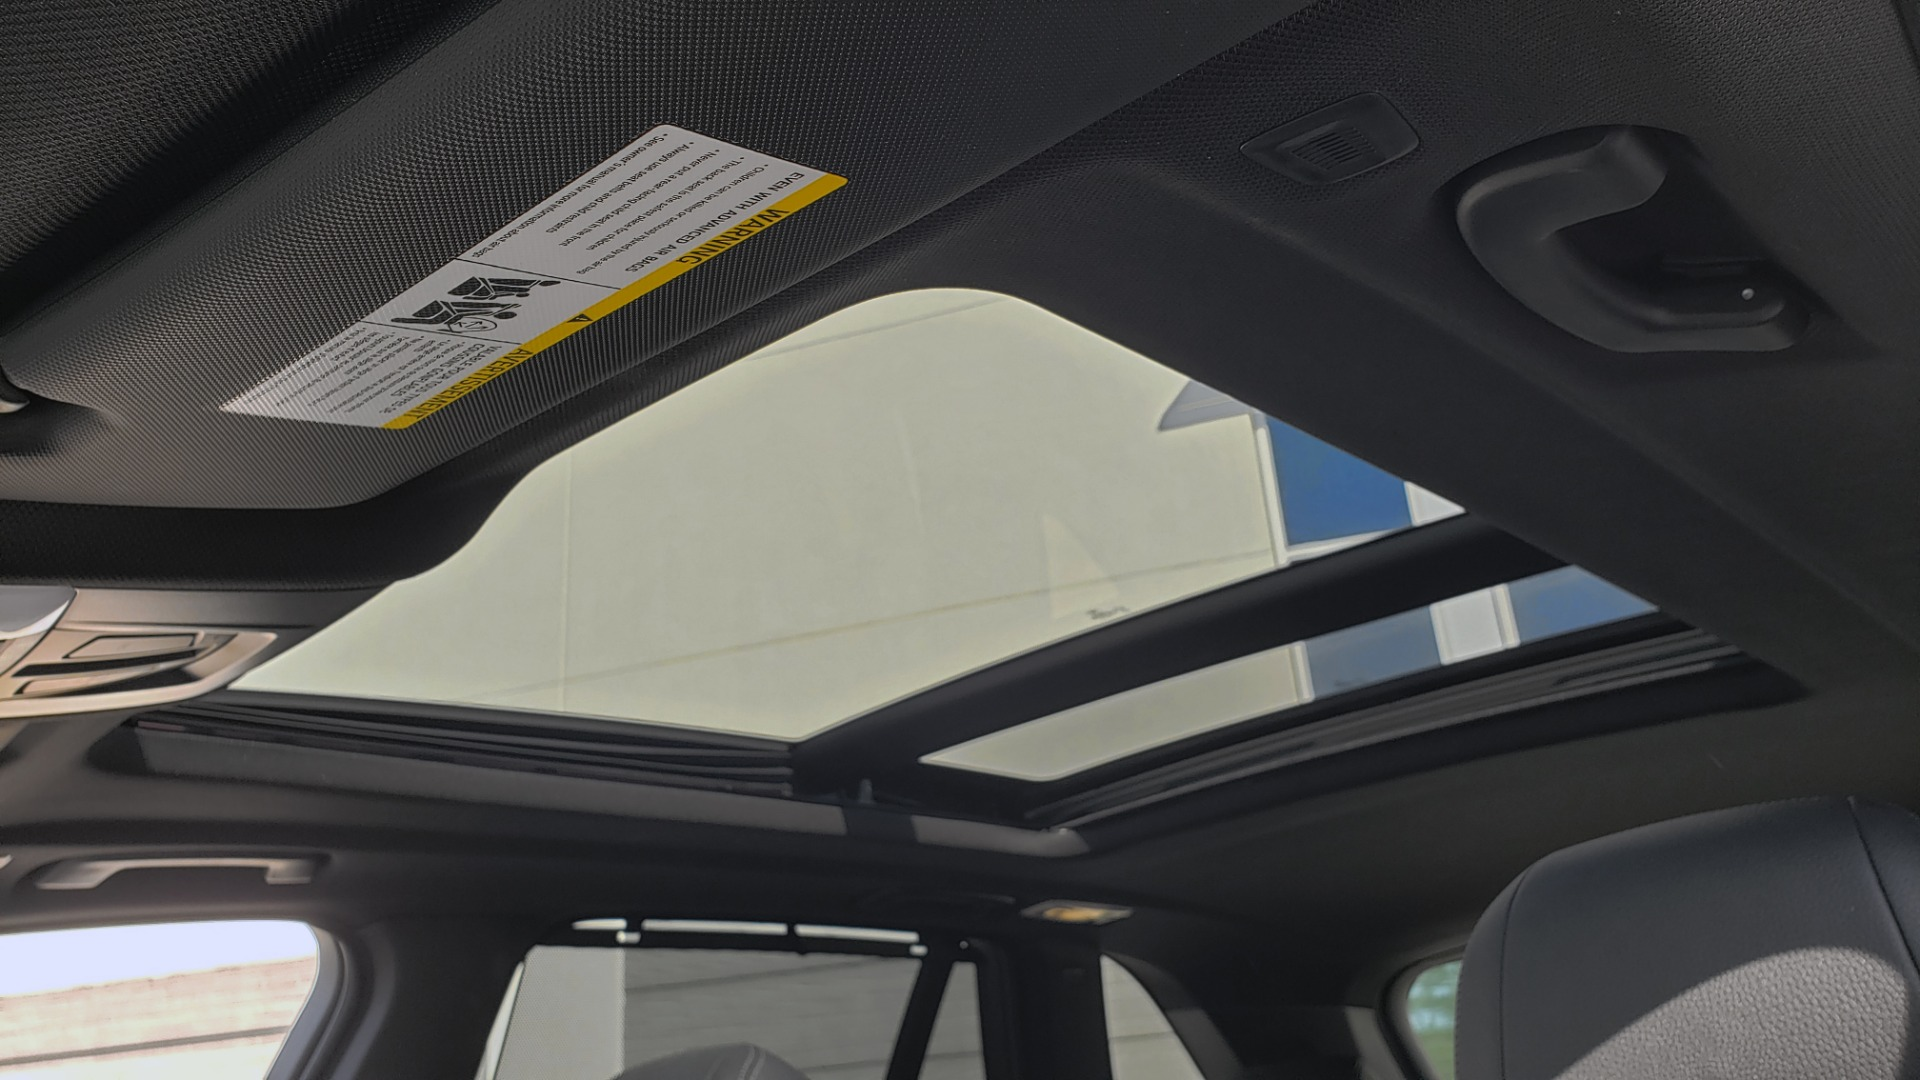 Used 2018 BMW X5 XDRIVE35I / M-SPORT / NAV / SUNROOF / H/K SND / REARVIEW for sale Sold at Formula Imports in Charlotte NC 28227 59